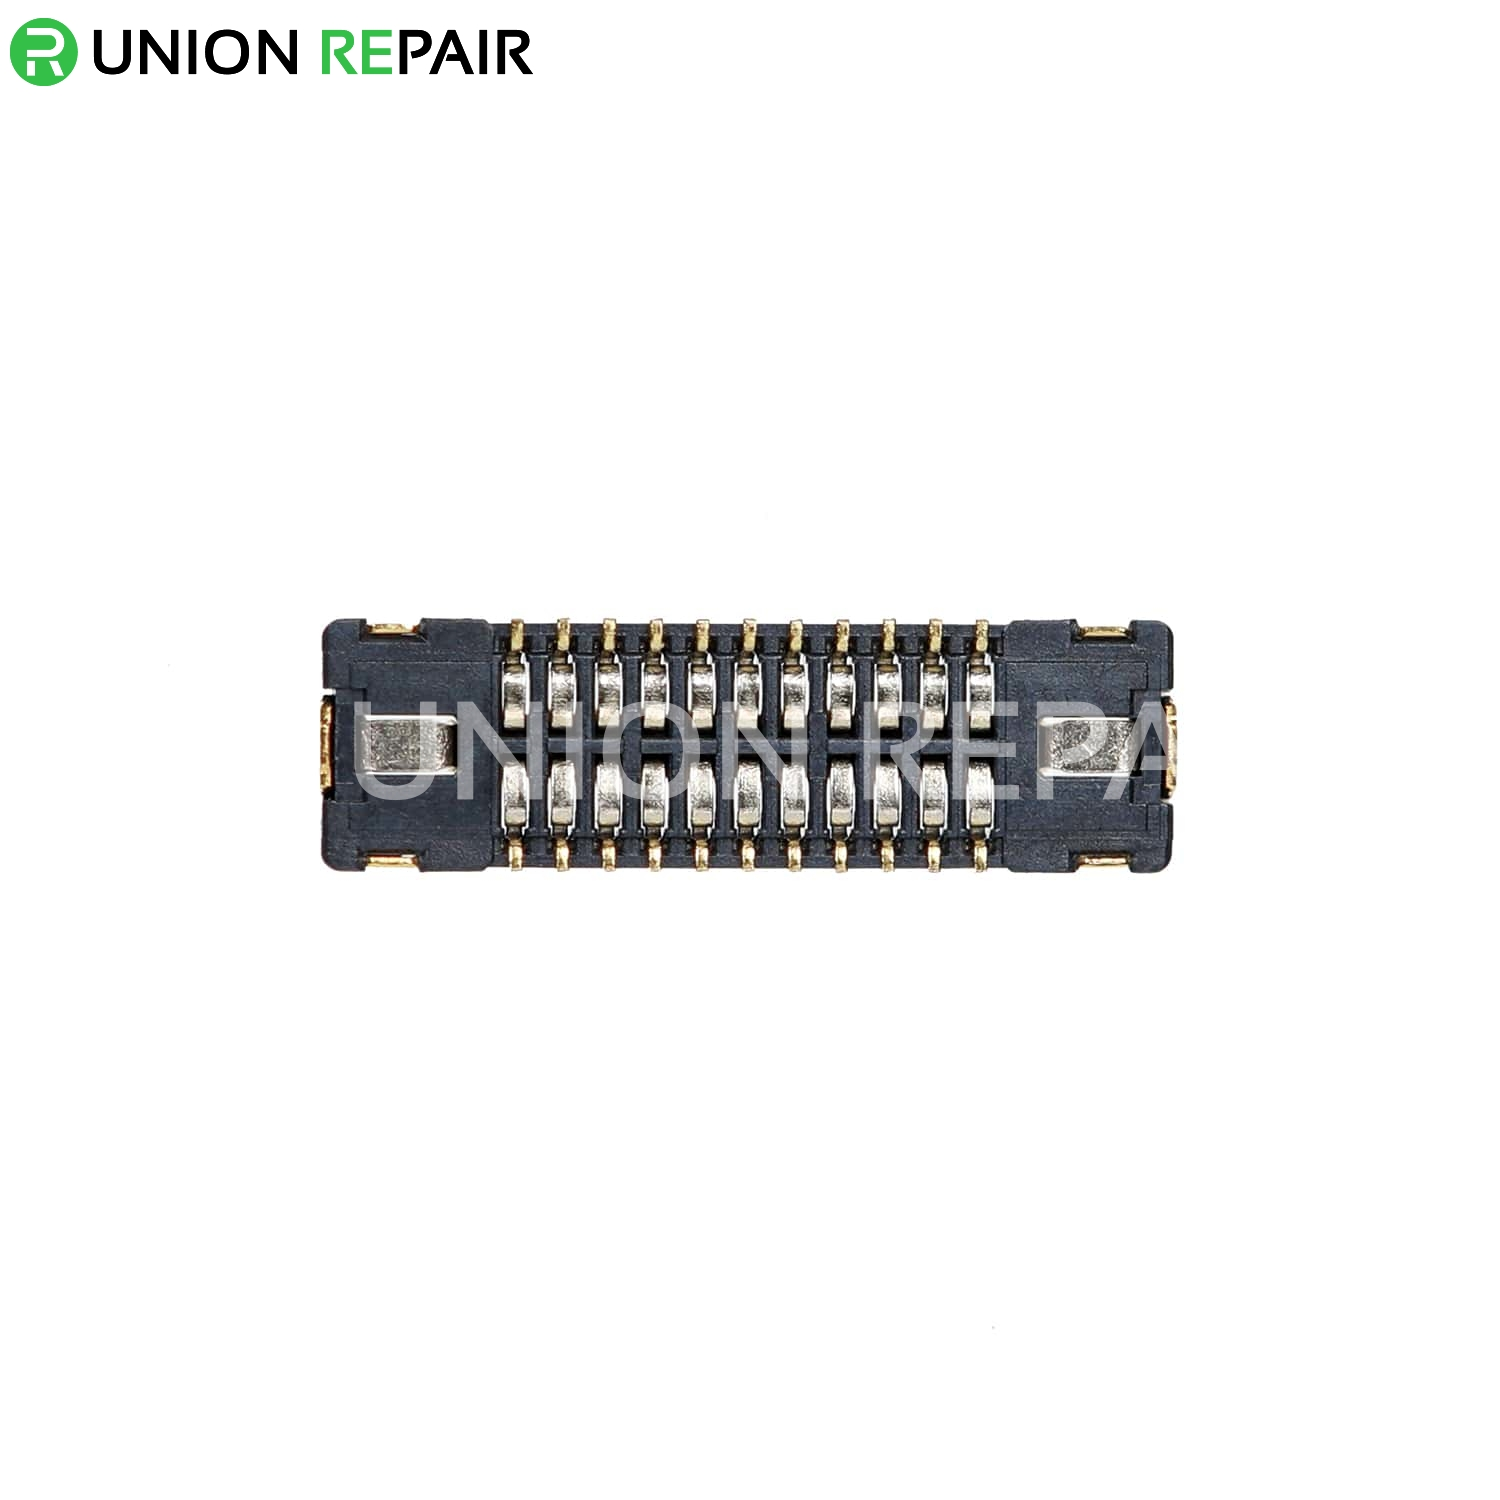 Replacement for iPhone 11 Pro/11 Pro Max Rear Telephoto Camera Connector Port Onboard